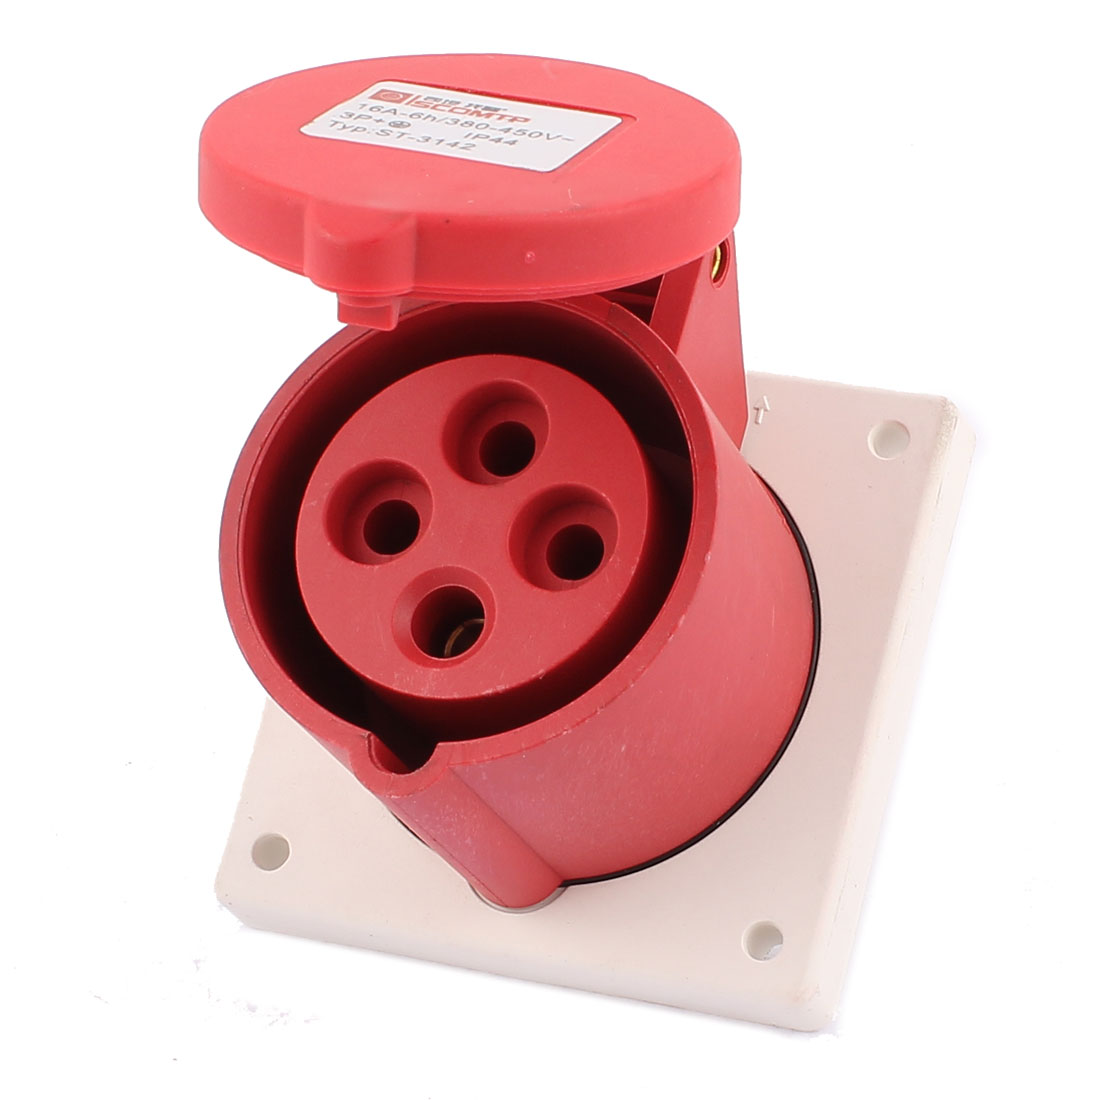 AC 380V-450V 16A IP44 3P+E 4P Female Industrial Concealing Straight Socket